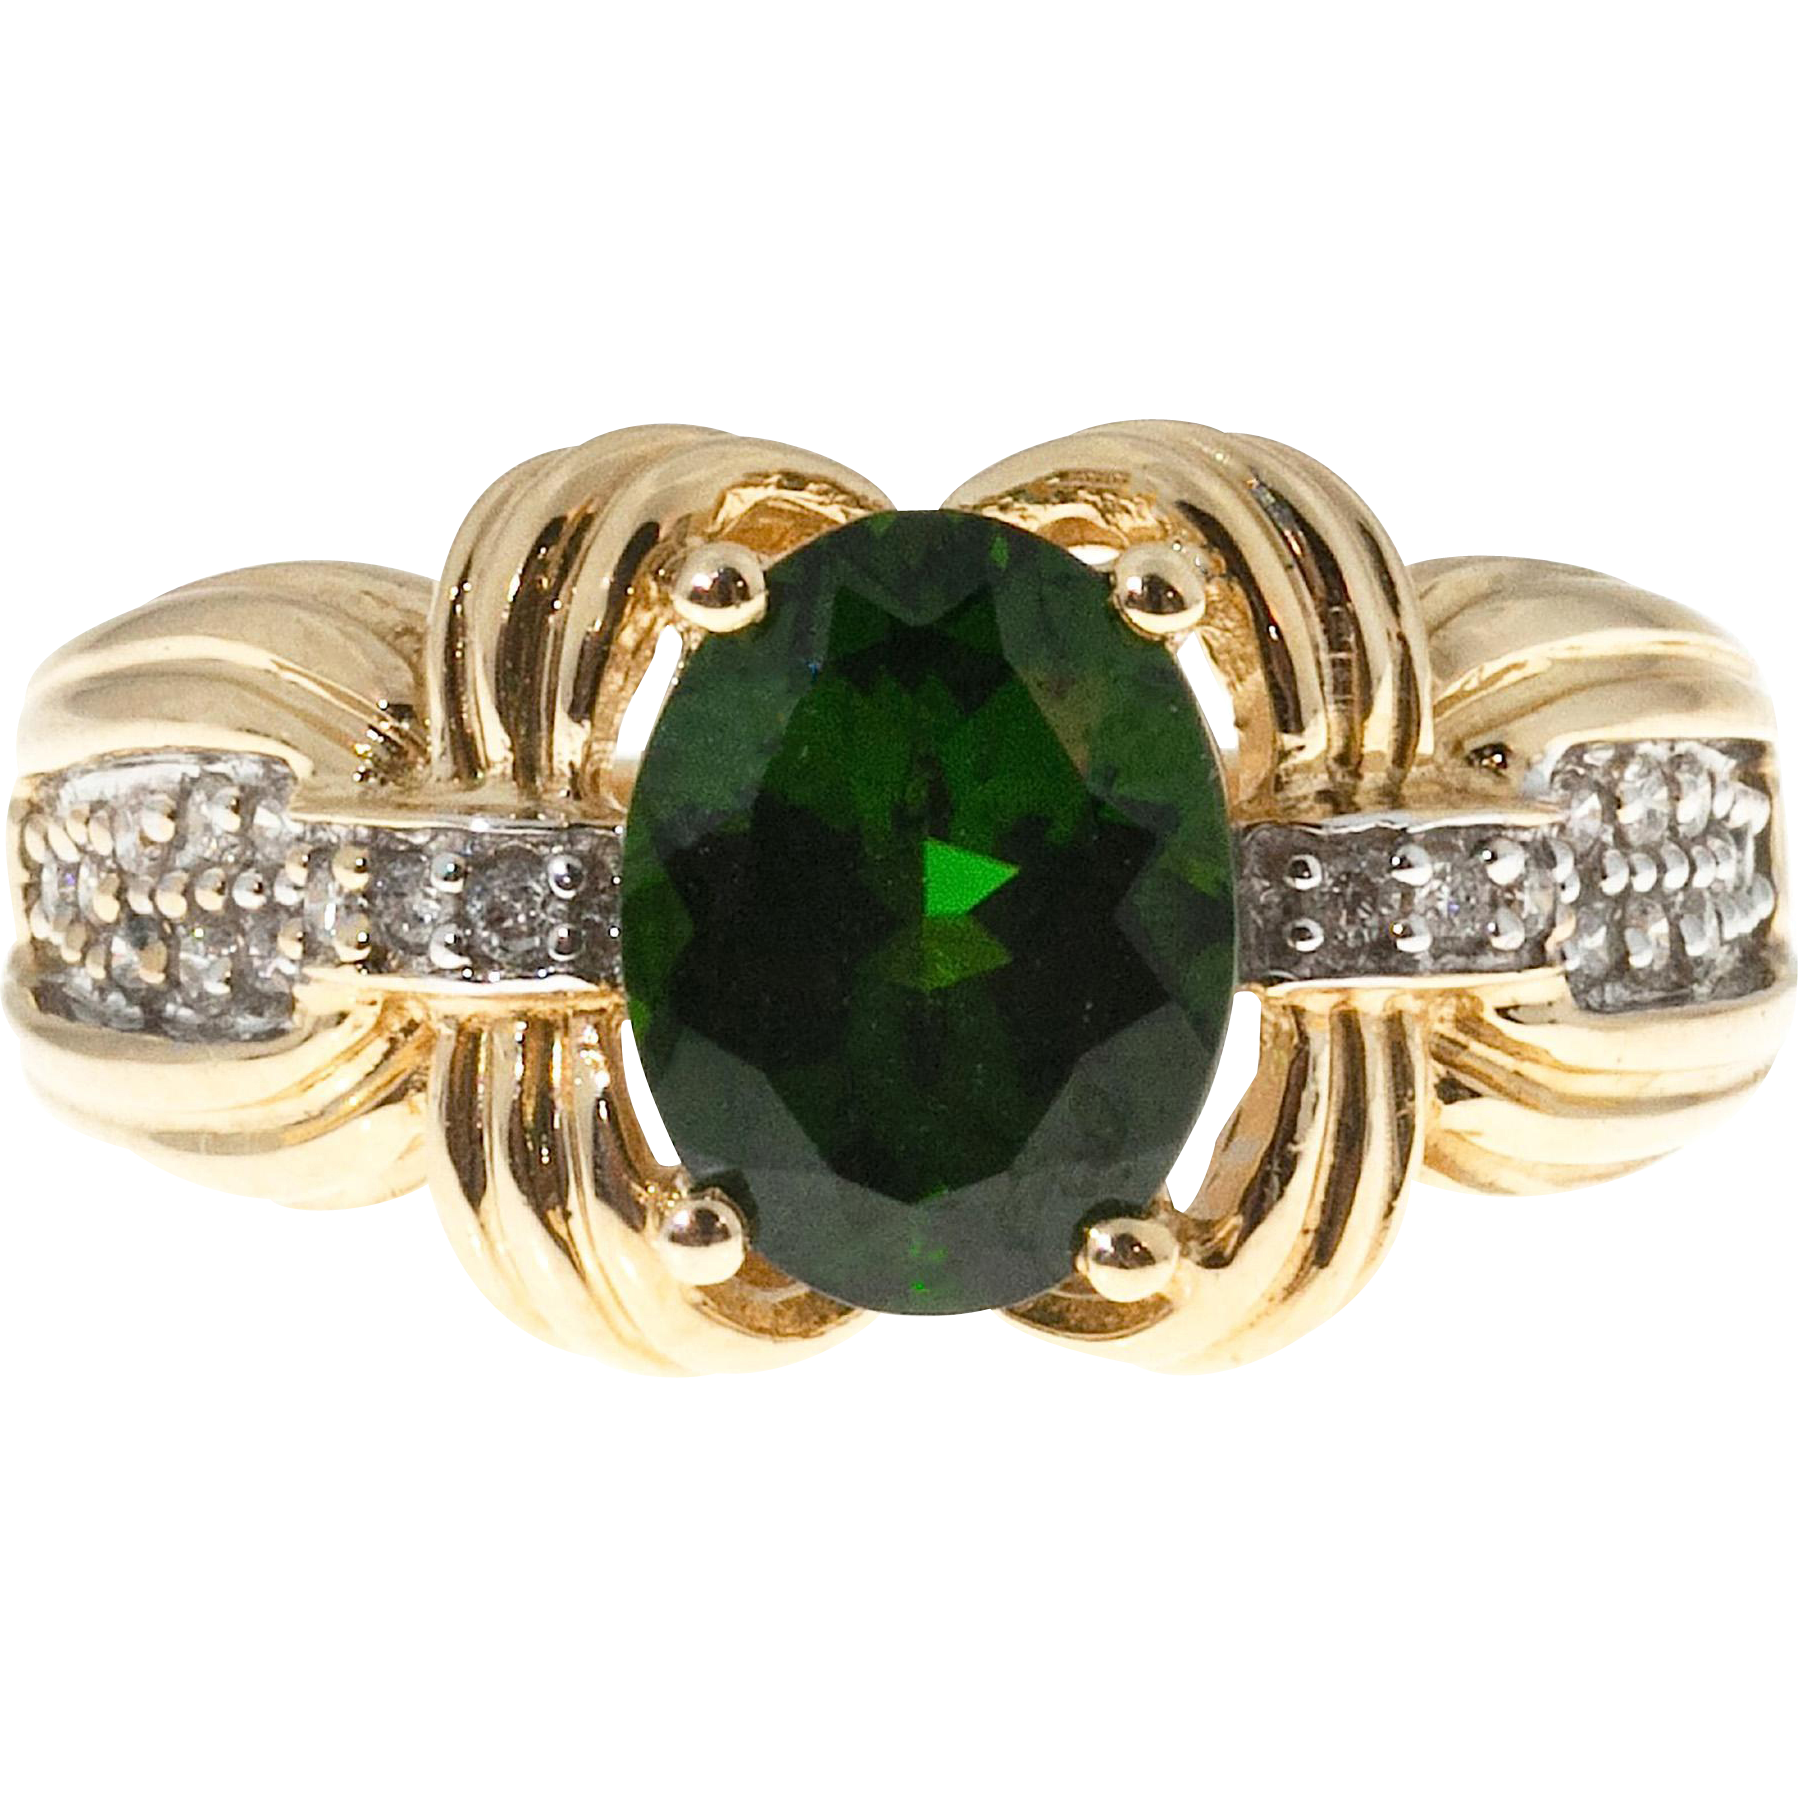 Green Tourmaline Diamond 14 Karat Yellow Gold Cocktail Ring